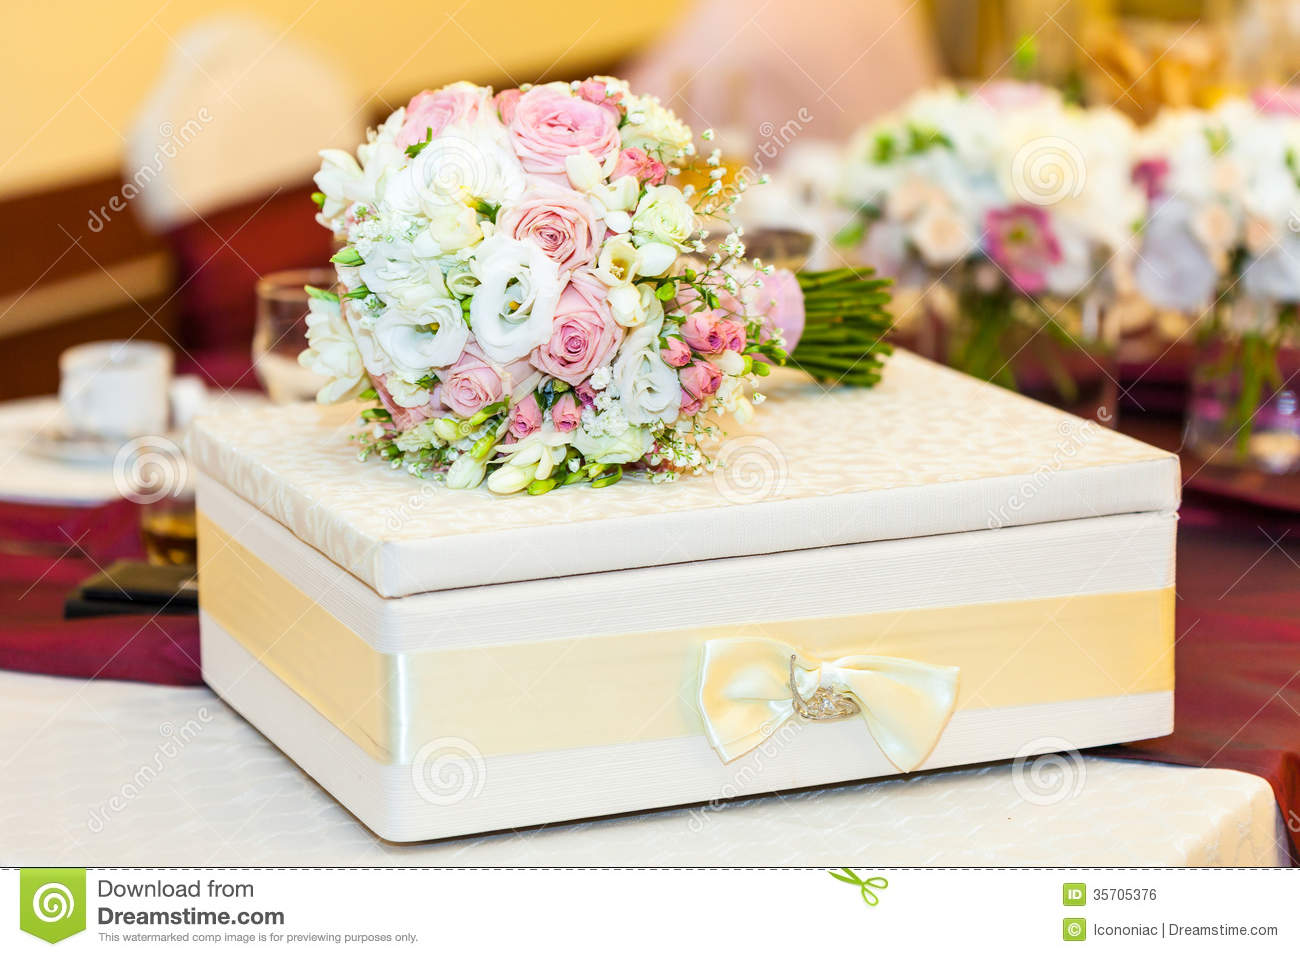 Wedding Gift Table Decoration : Wedding Table Decoration With Bride Bouquet Royalty Free Stock Image ...